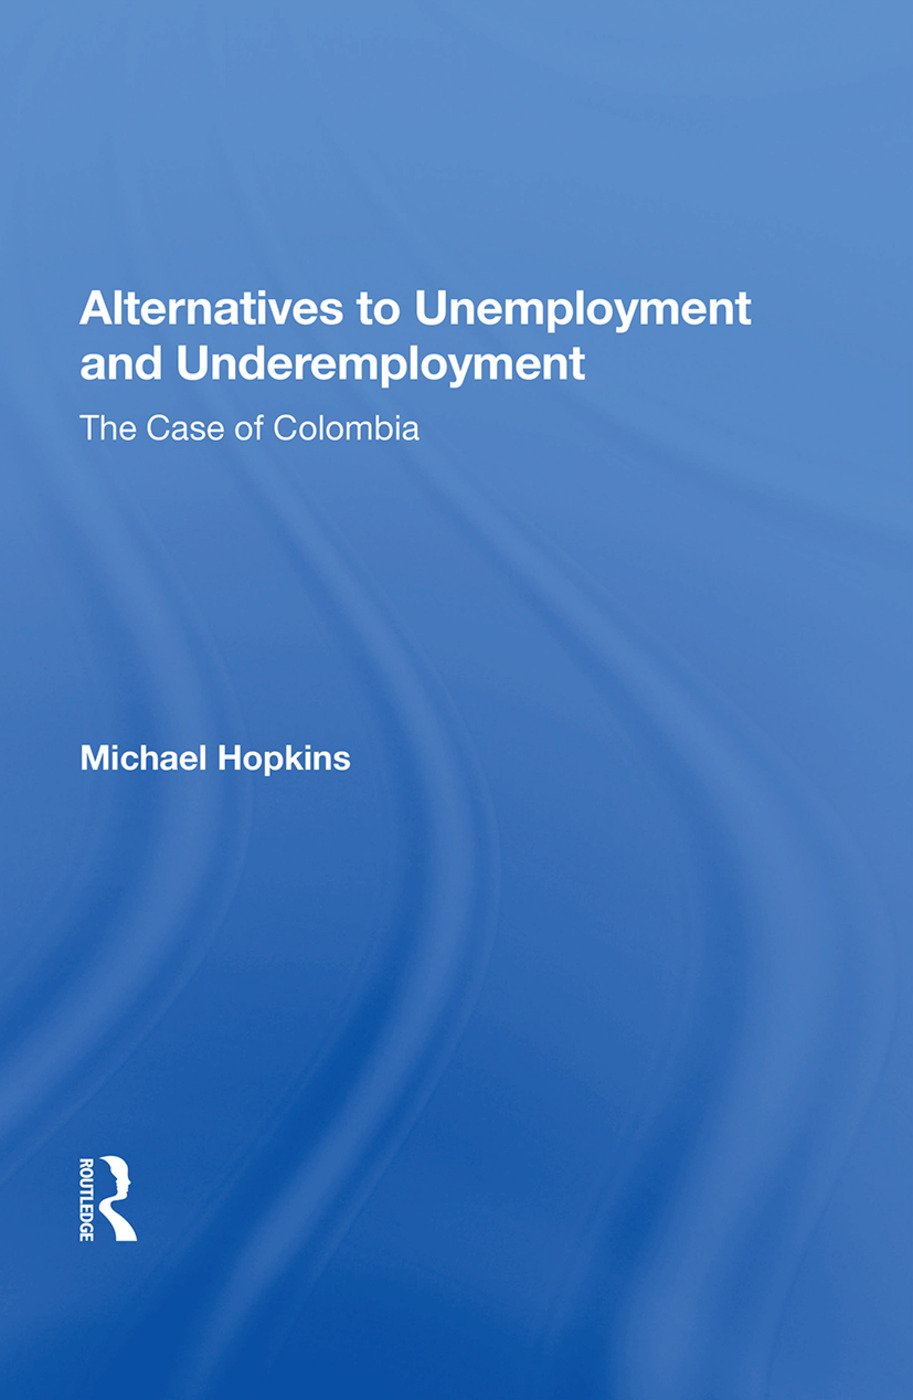 Alternatives To Unemployment And Underemployment: The Case Of Colombia book cover